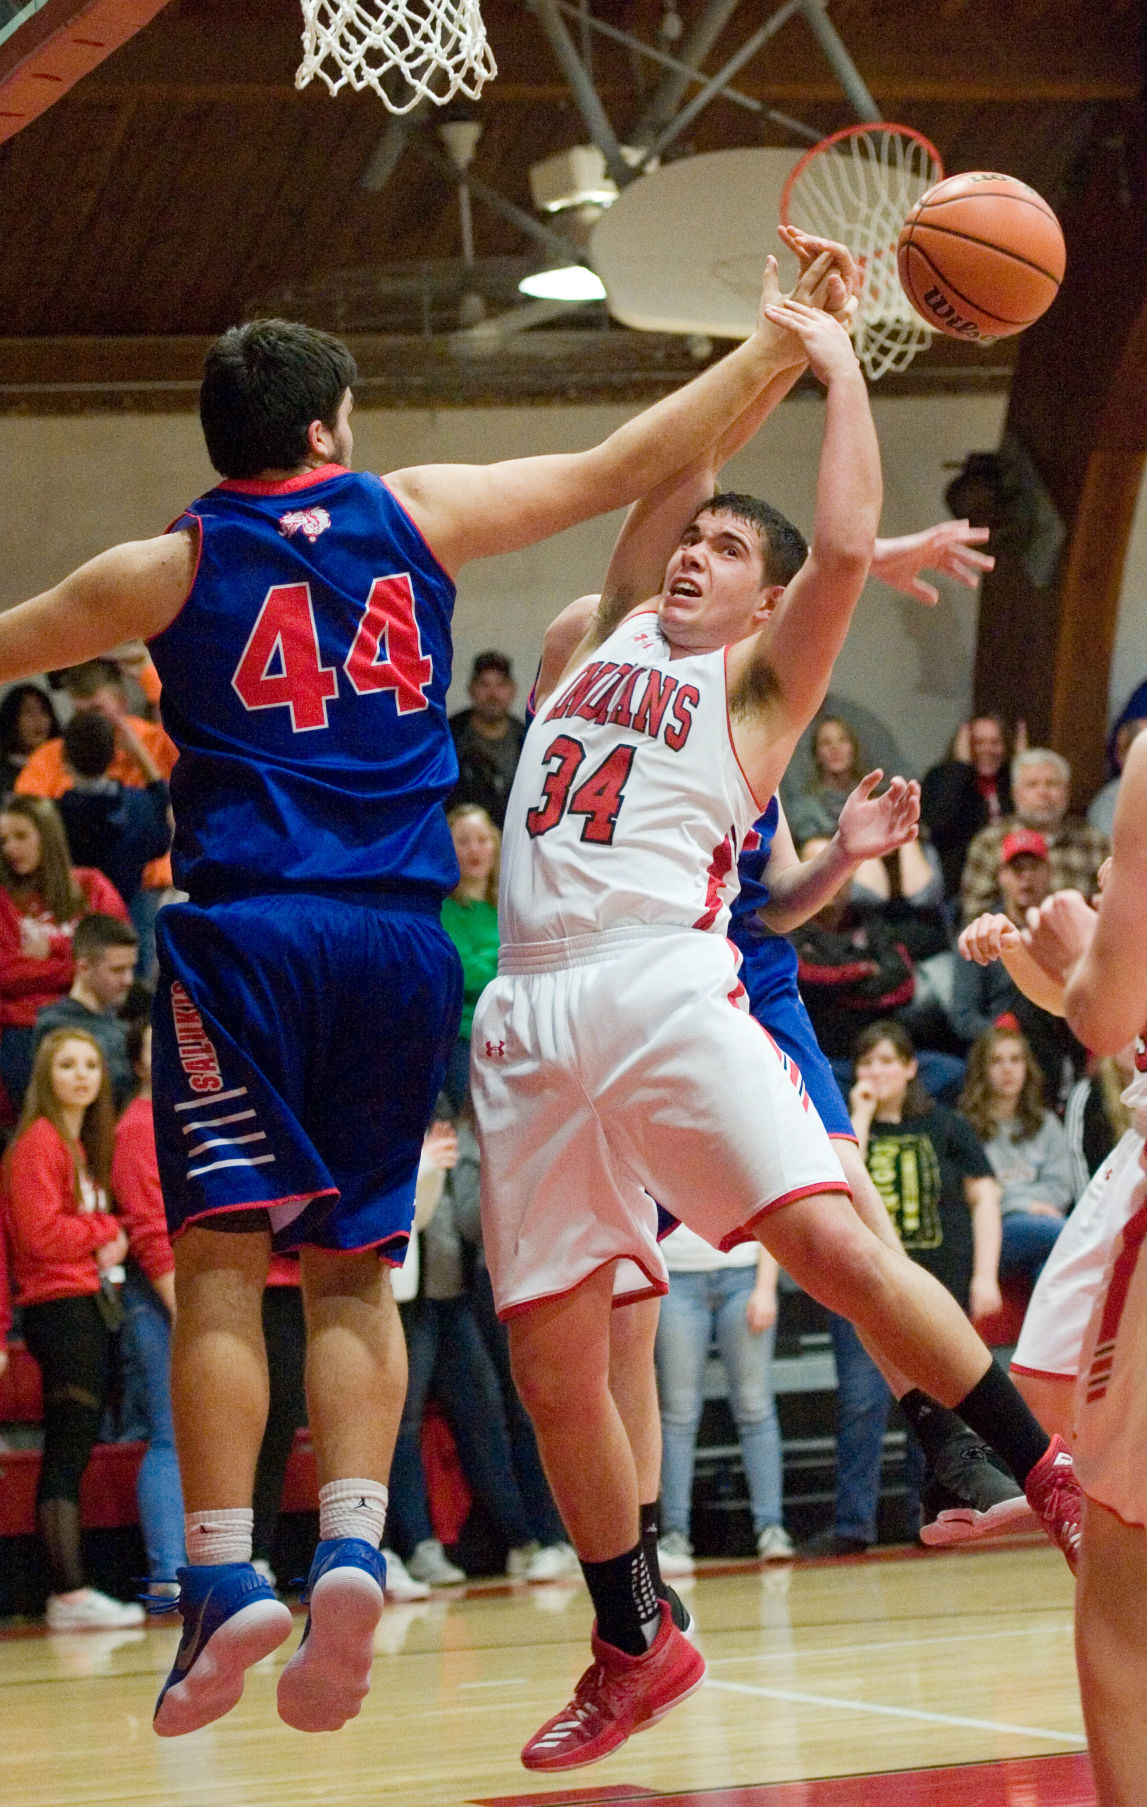 Neoga boys basketball 02/02/18